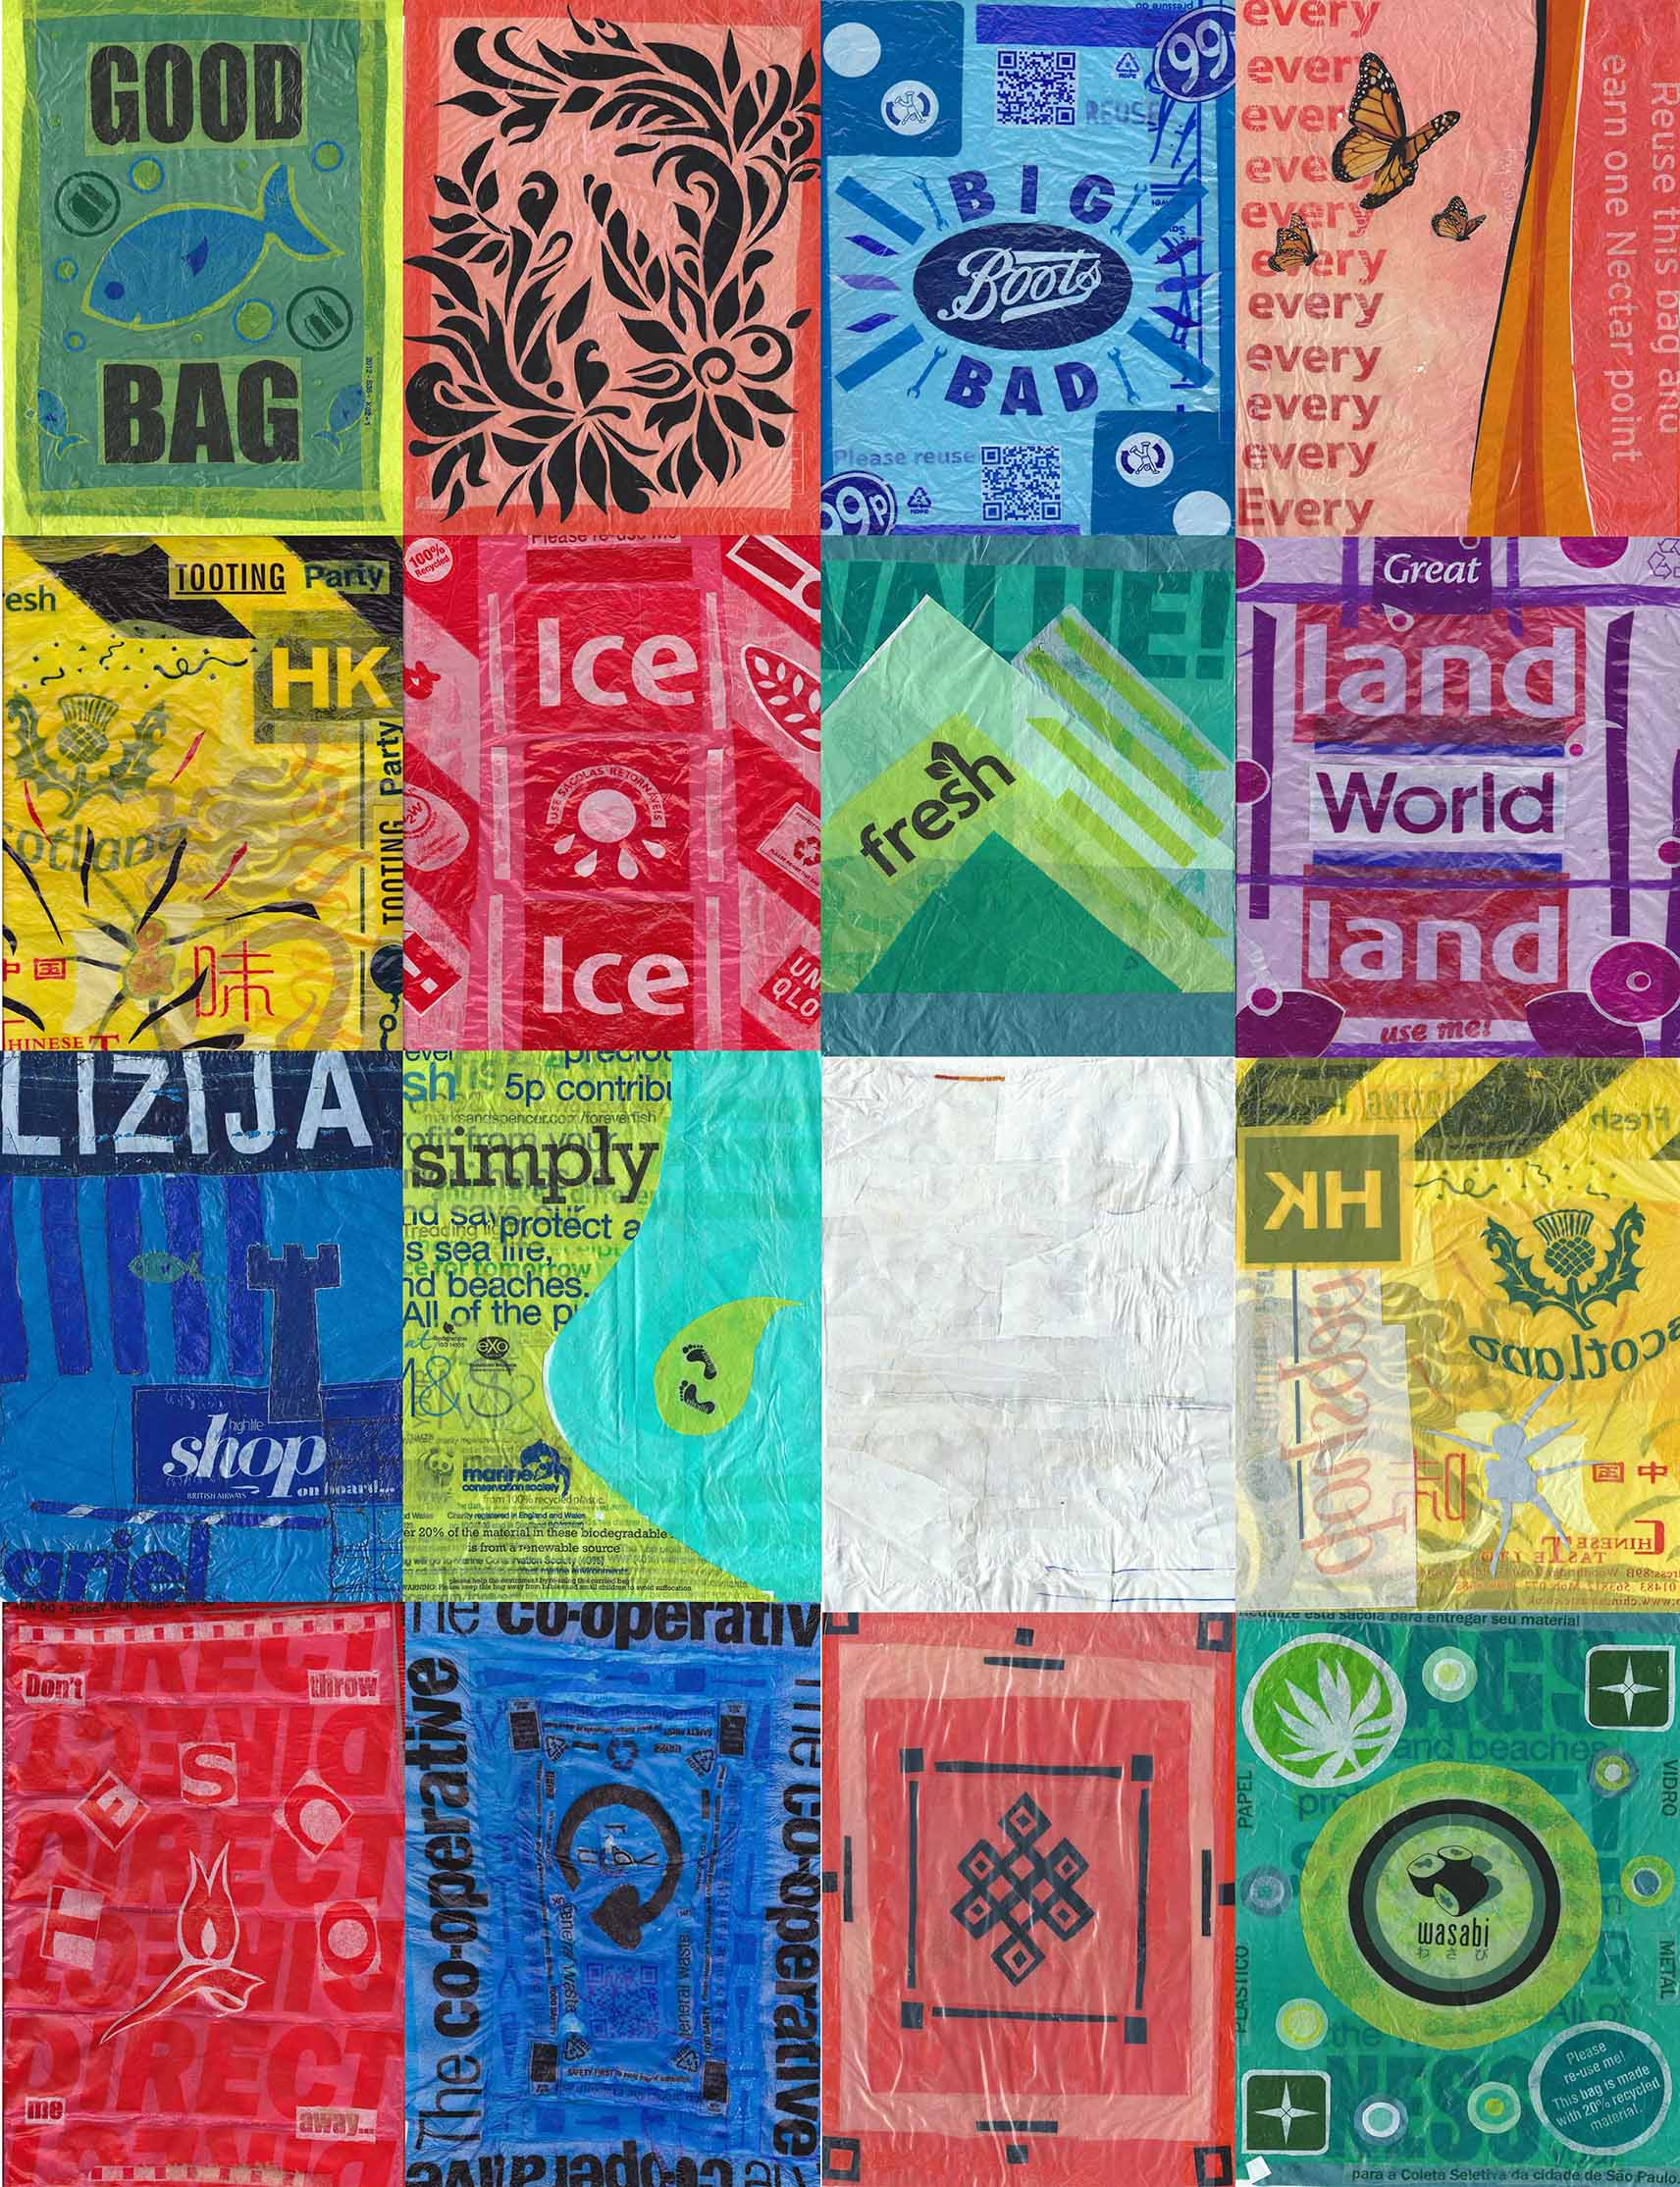 Prayer flags contructed from plastic bags